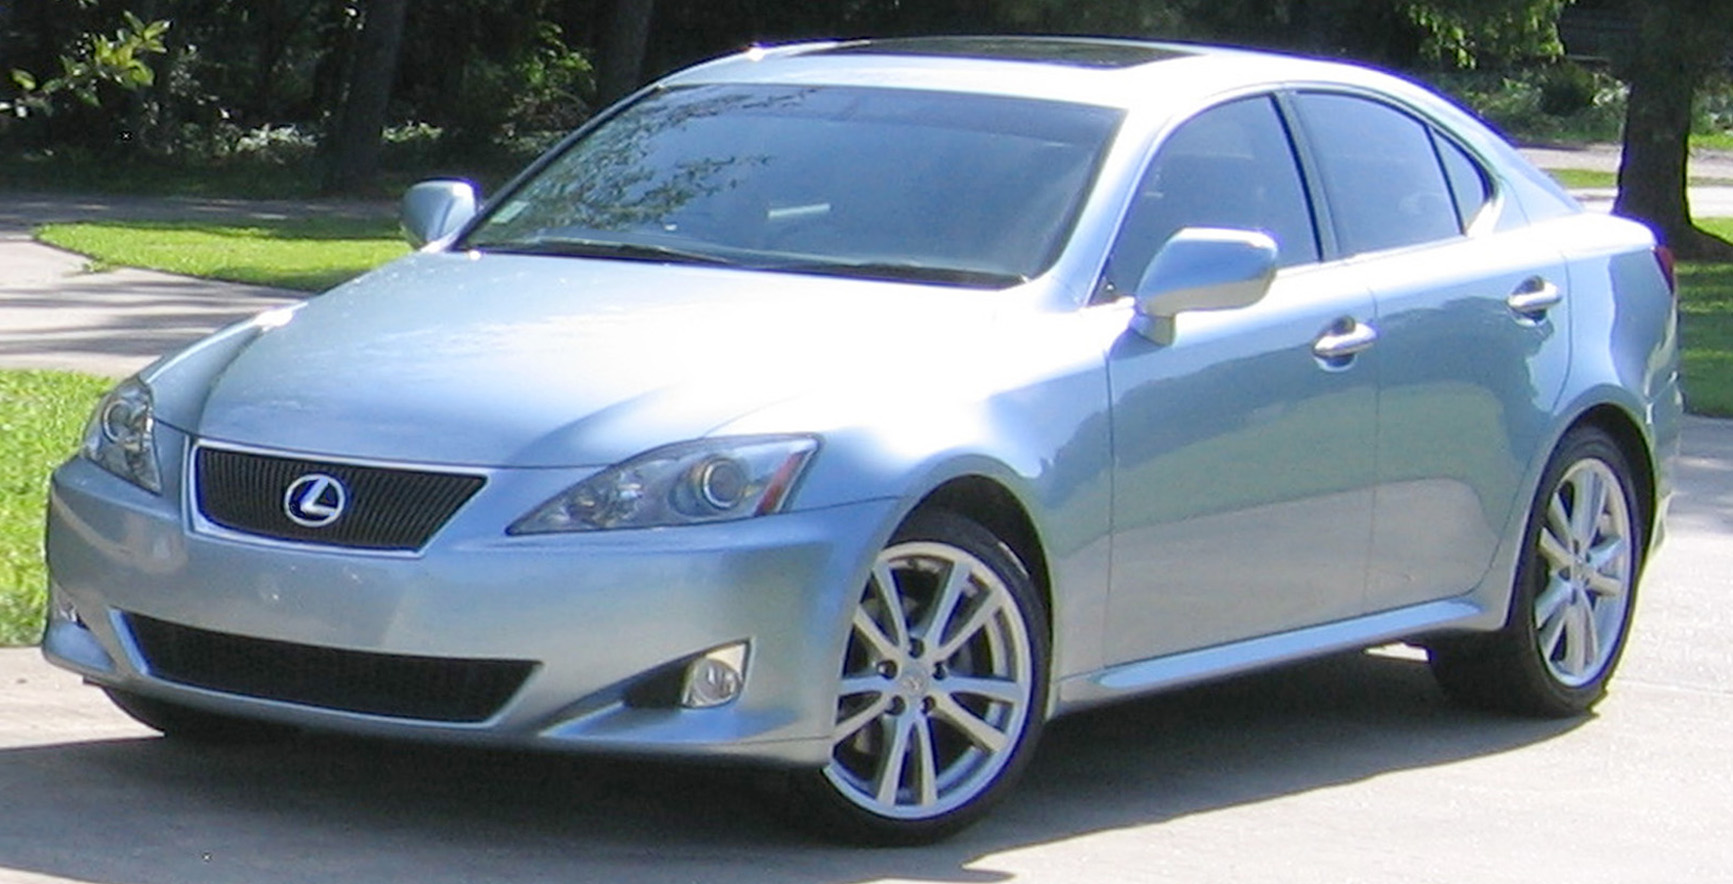 2007 Lexus Is 250 Information And Photos Momentcar